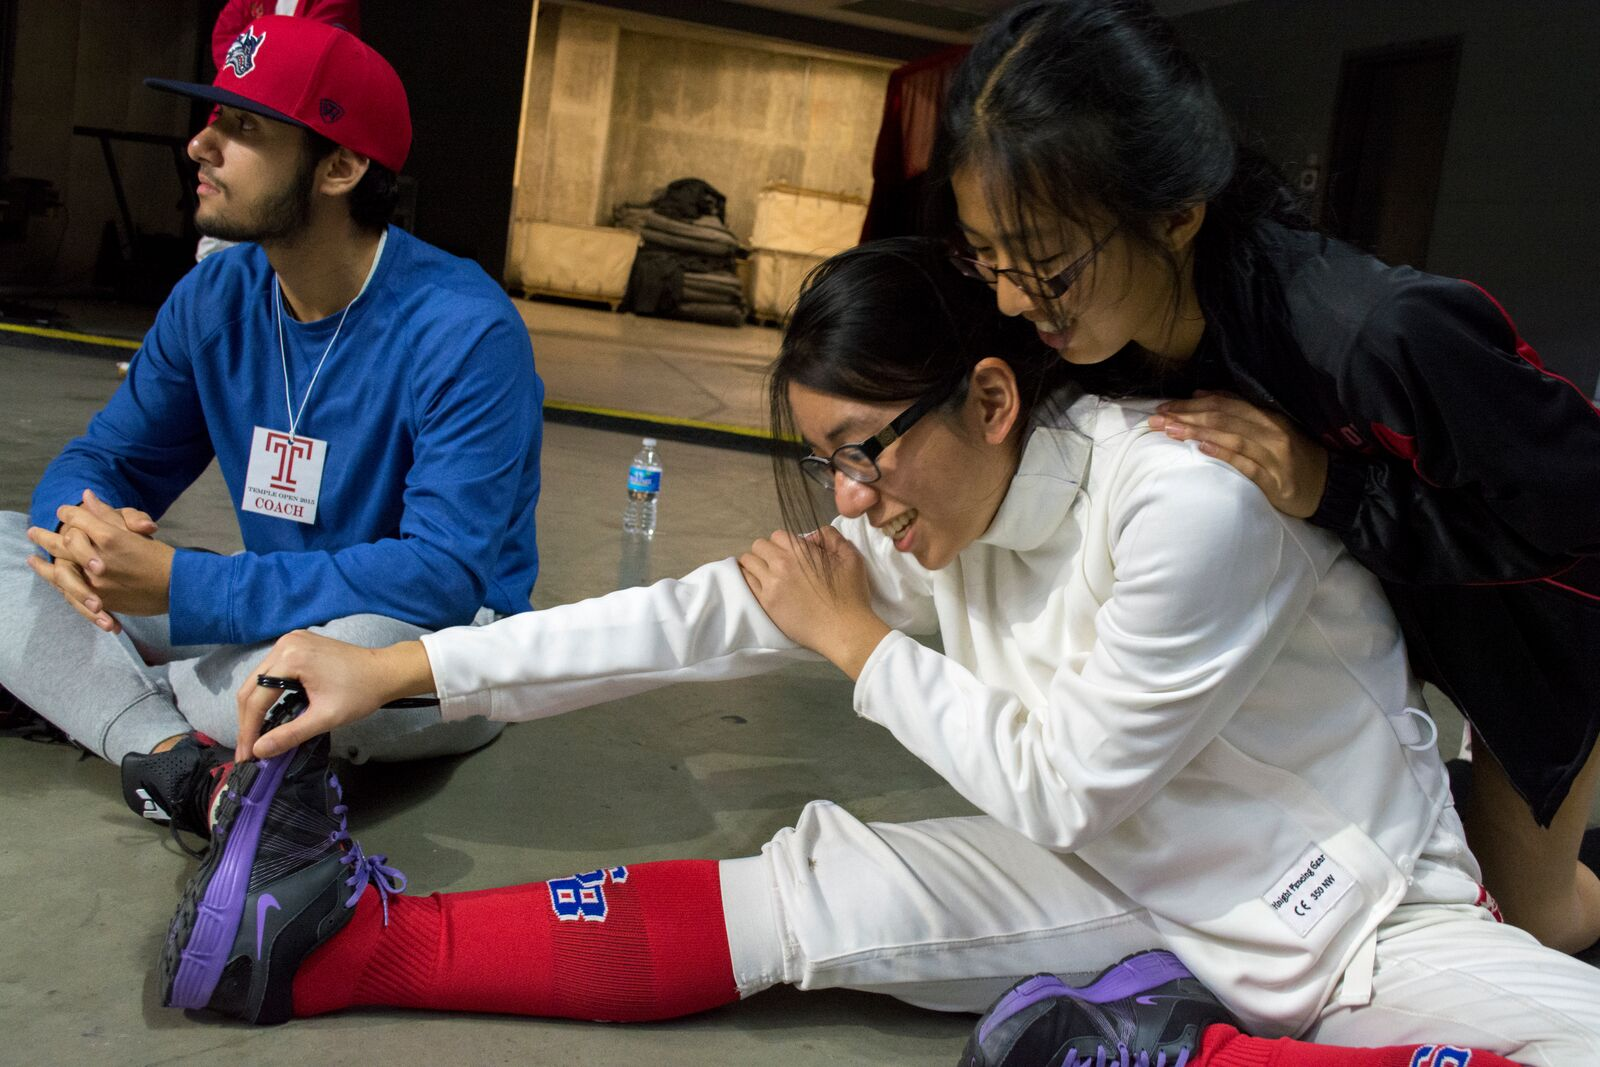 Stony Brook sophomore épée fencer Olivia Hu (above, right) helps sophomore épée fencer Brianna Bawayan stretch out for her direct elimination match against Haverford épée fencer Julie Petersen. Bawayan would go on to place 47th out of 84 in her division. CHRISTOPHER CAMERON/THE STATESMAN